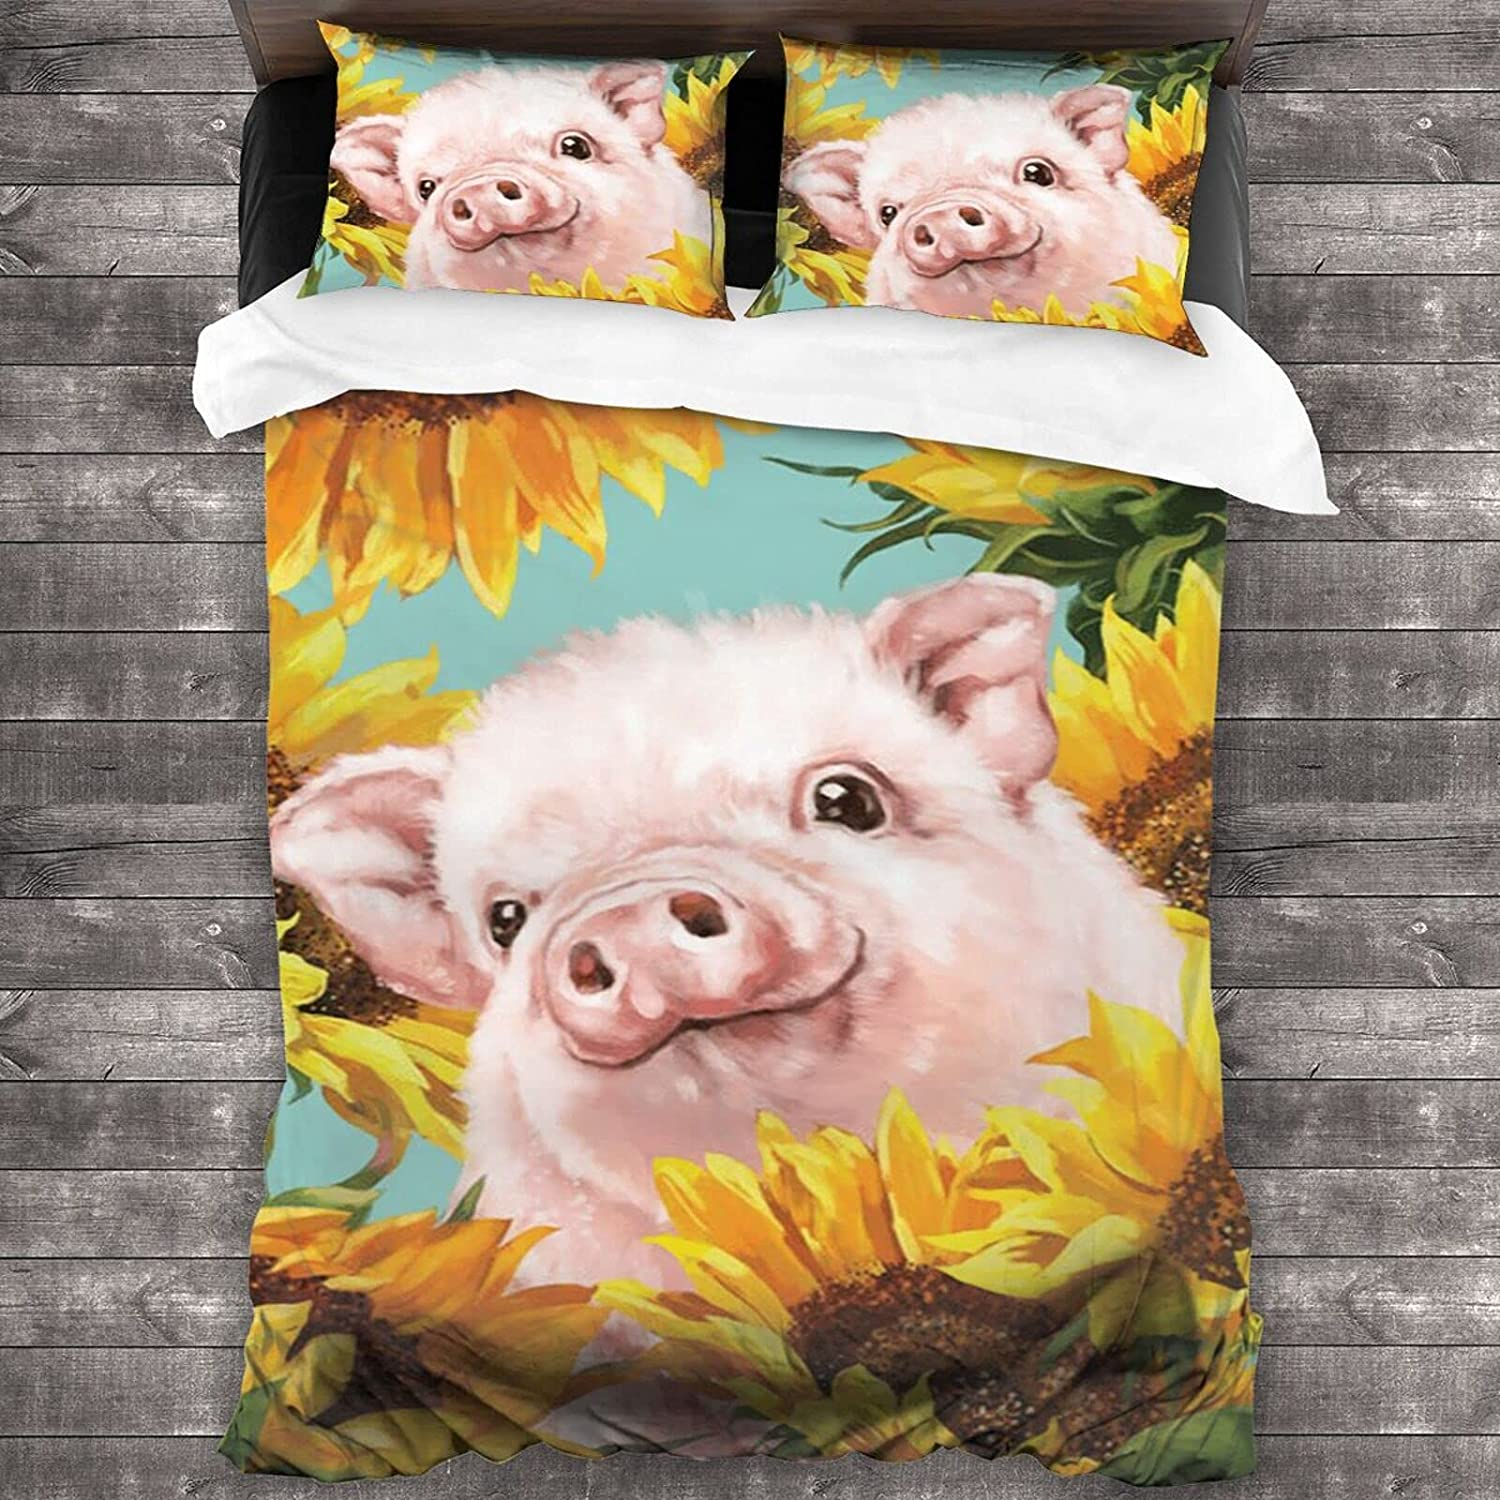 Popular Baby Pig with Sunflower Bedding Cover 3-Piece Manufacturer direct delivery Rapid rise Lovely Set